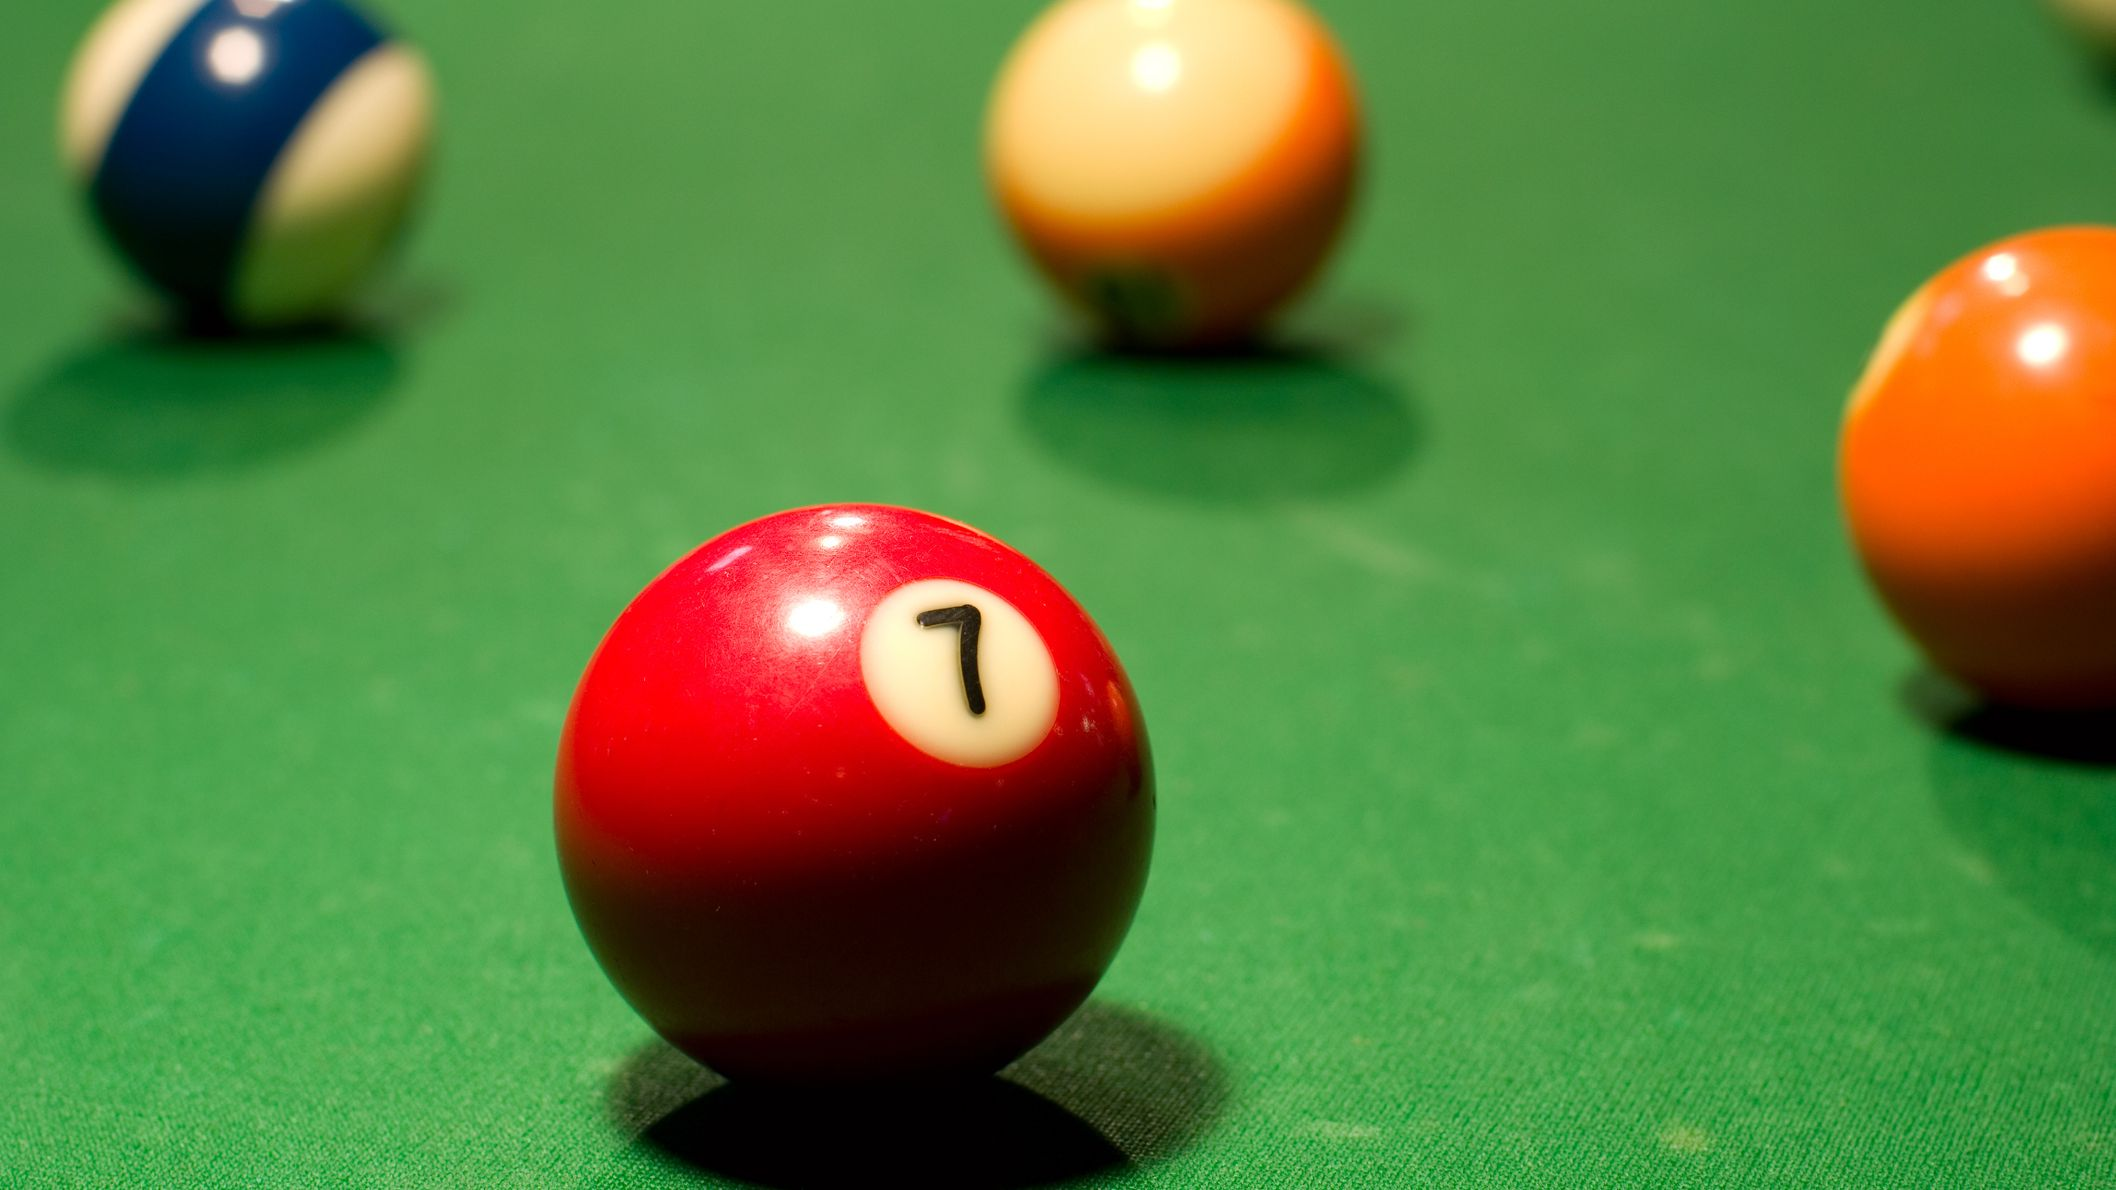 7 Ball Pool Rules And Strategy